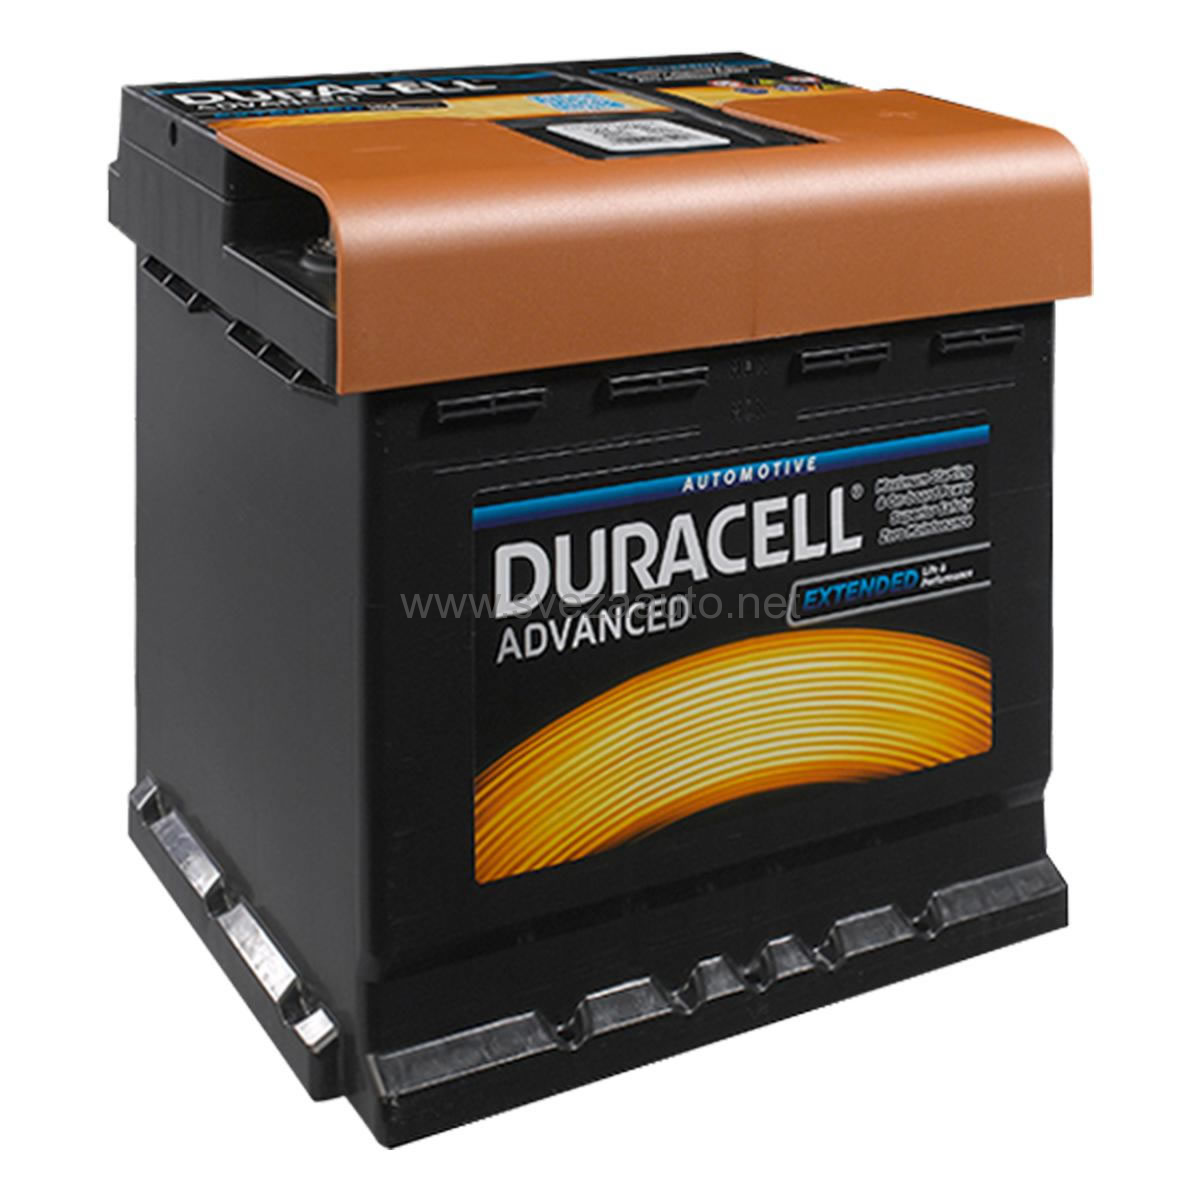 Duracell 12V 44Ah D+ Akumulator DA 44 Advanced